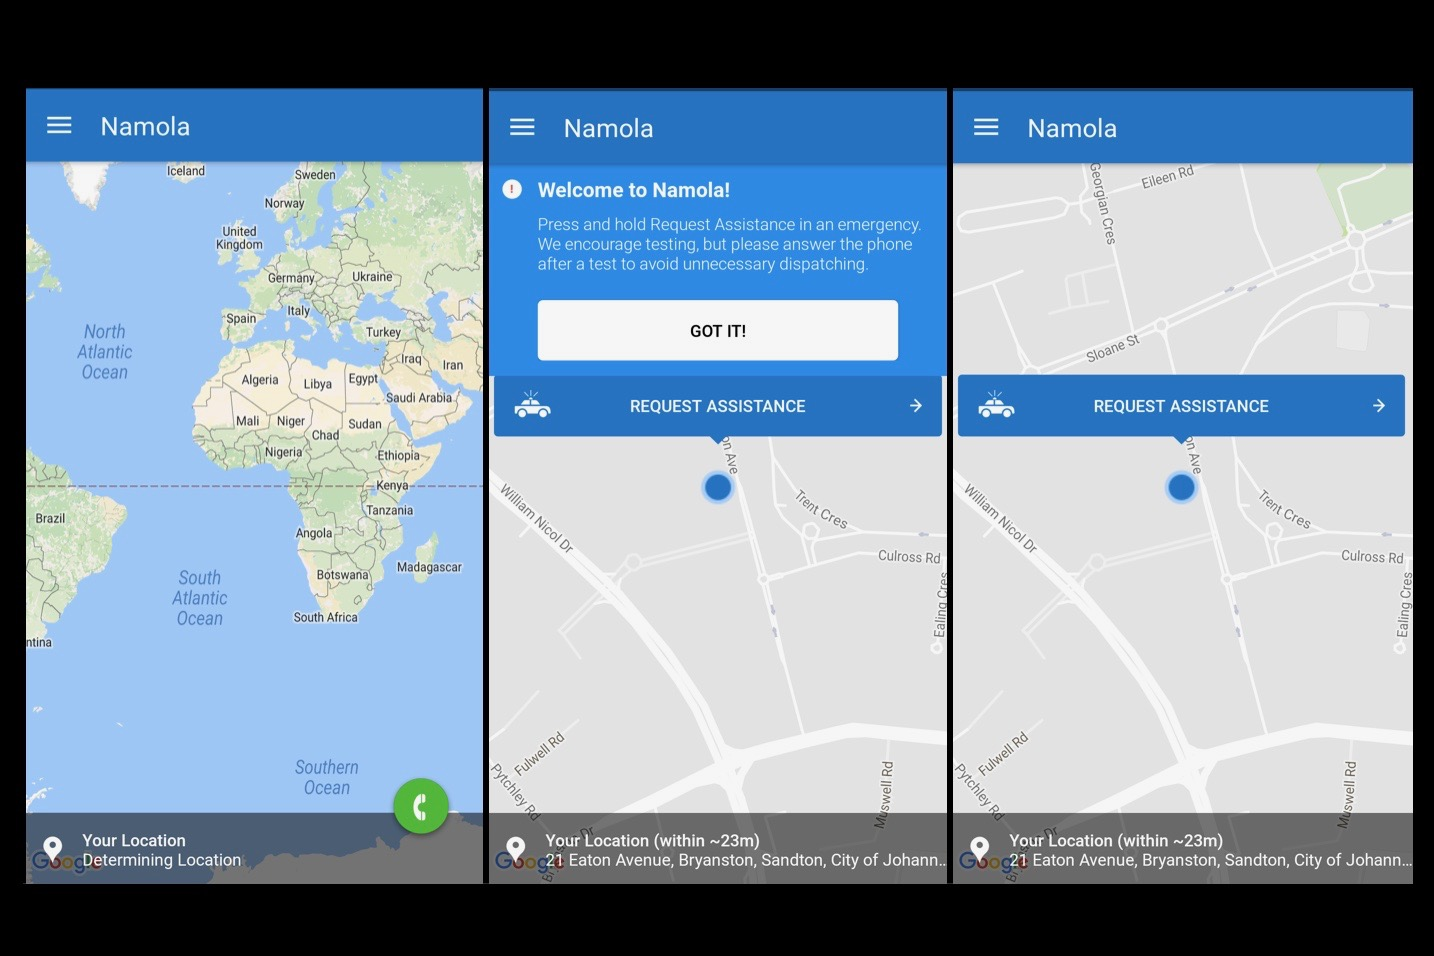 mobapp,apps,utilities,Namola,app,review,star rating,citizens,safety,safe,crime,directly,connecting,police,reach,help,quickly,safely,location,nearest,emergency situation,protect,#MakeSASafe,report,incidents,Gauteng,South Africa,expand,app store,trending,protected,sign-up,email,number,password,photo,recognise,situation,account,map,determining location,location setting,enable,device,request assistance,hold,authorities,dispatched,option,settings,report corruption,prevent,emergency assistance,warned,red,get help,initiative,